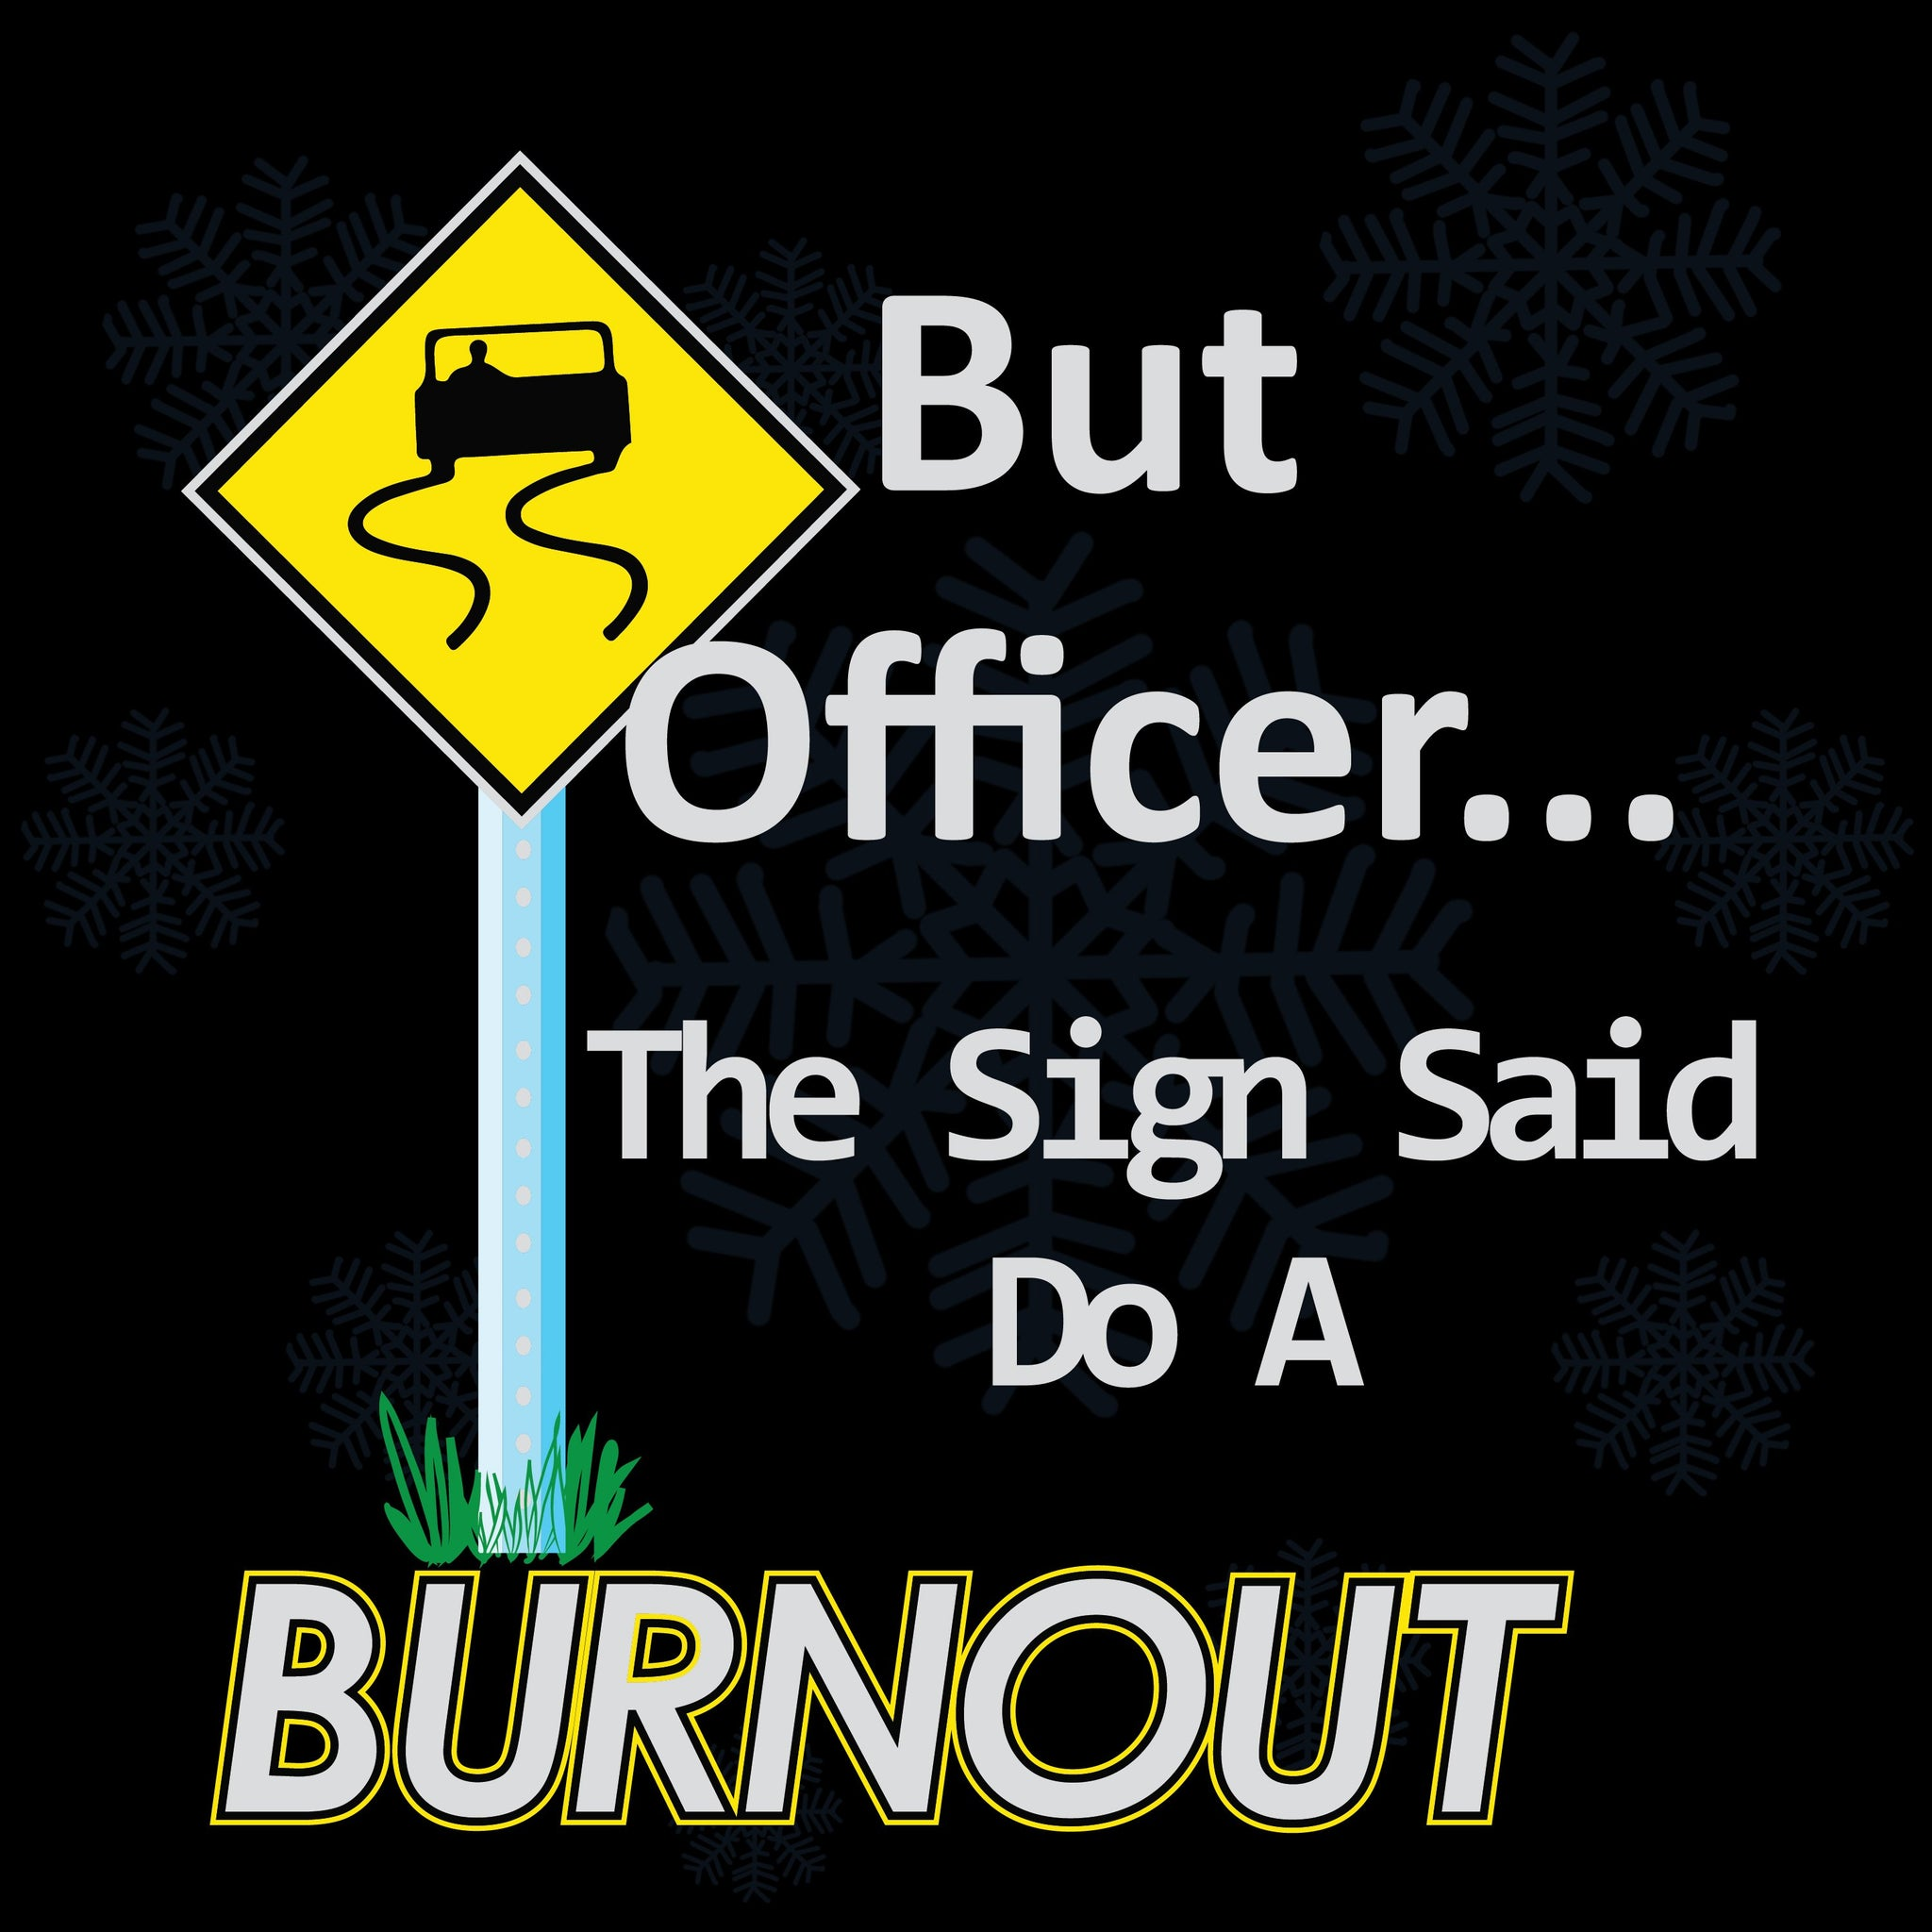 But officer the sign said do a burnout , officer svg, police svg, policeman svg, military svg, law svg, do burnout svg, police officer,police officer svg,trending svg, Files For Silhouette, Files For Cricut, SVG, DXF, EPS, PNG, Instant Download